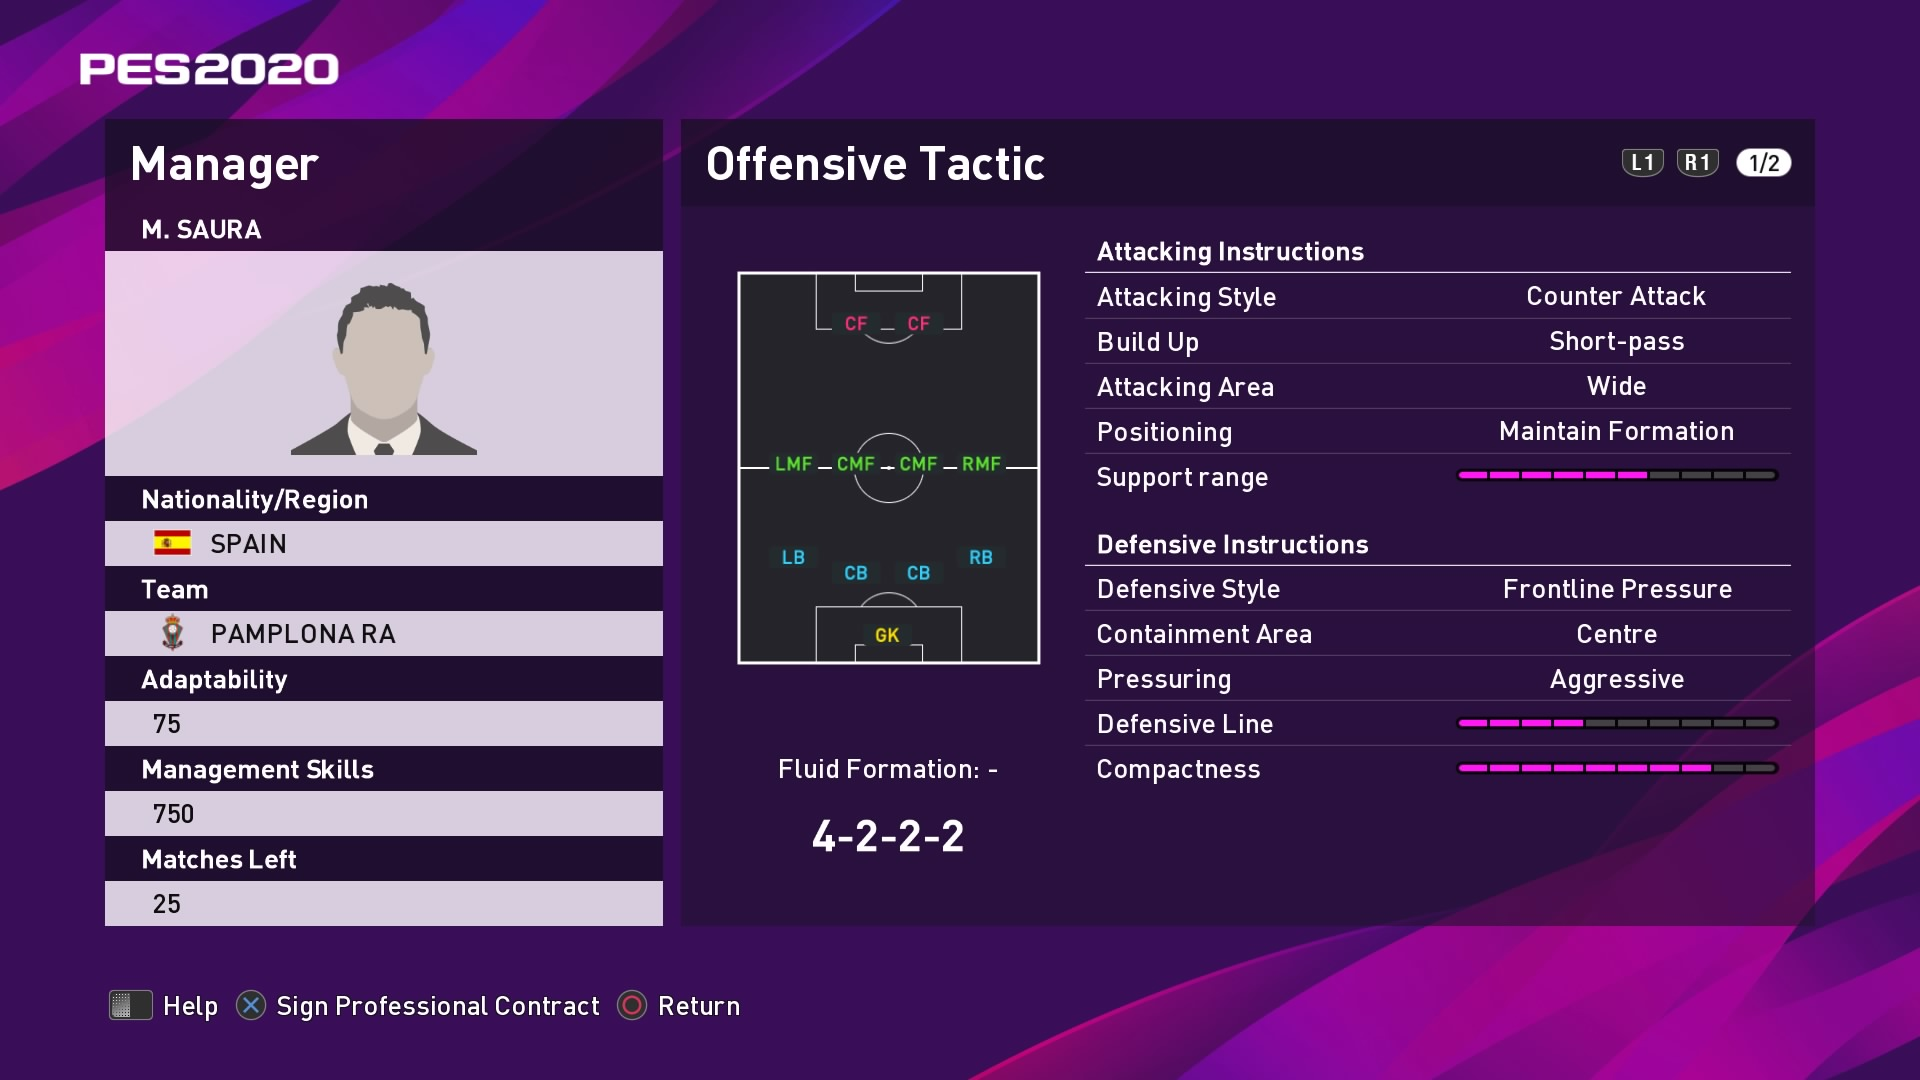 M. Saura (Jagoba Arrasate) Offensive Tactic in PES 2020 myClub